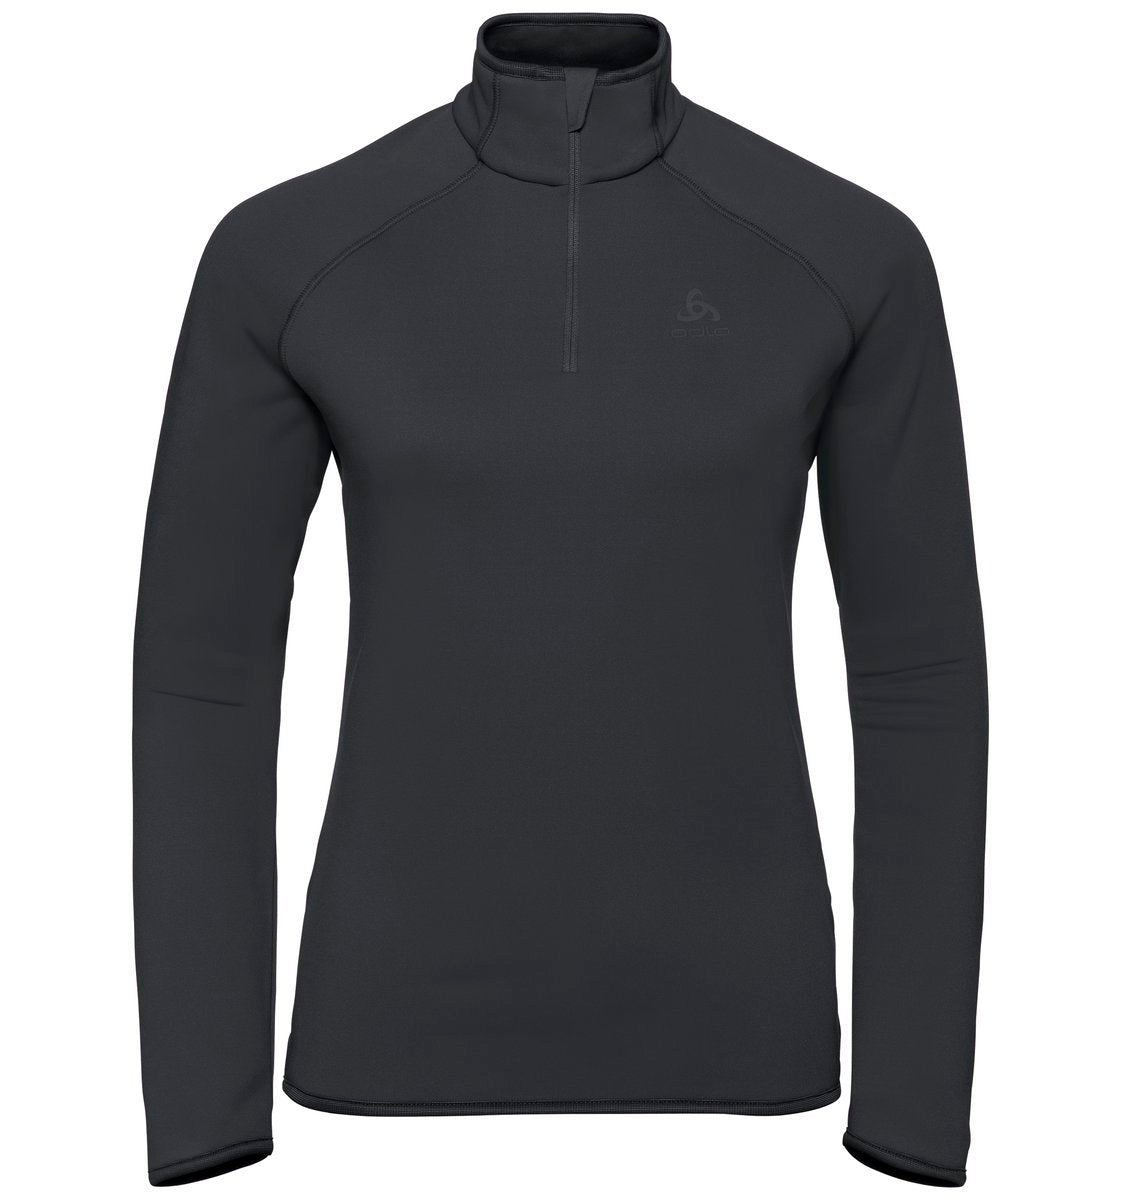 Odlo Women's CARVE CERAMIWARM 1/2 Zip Midlayer